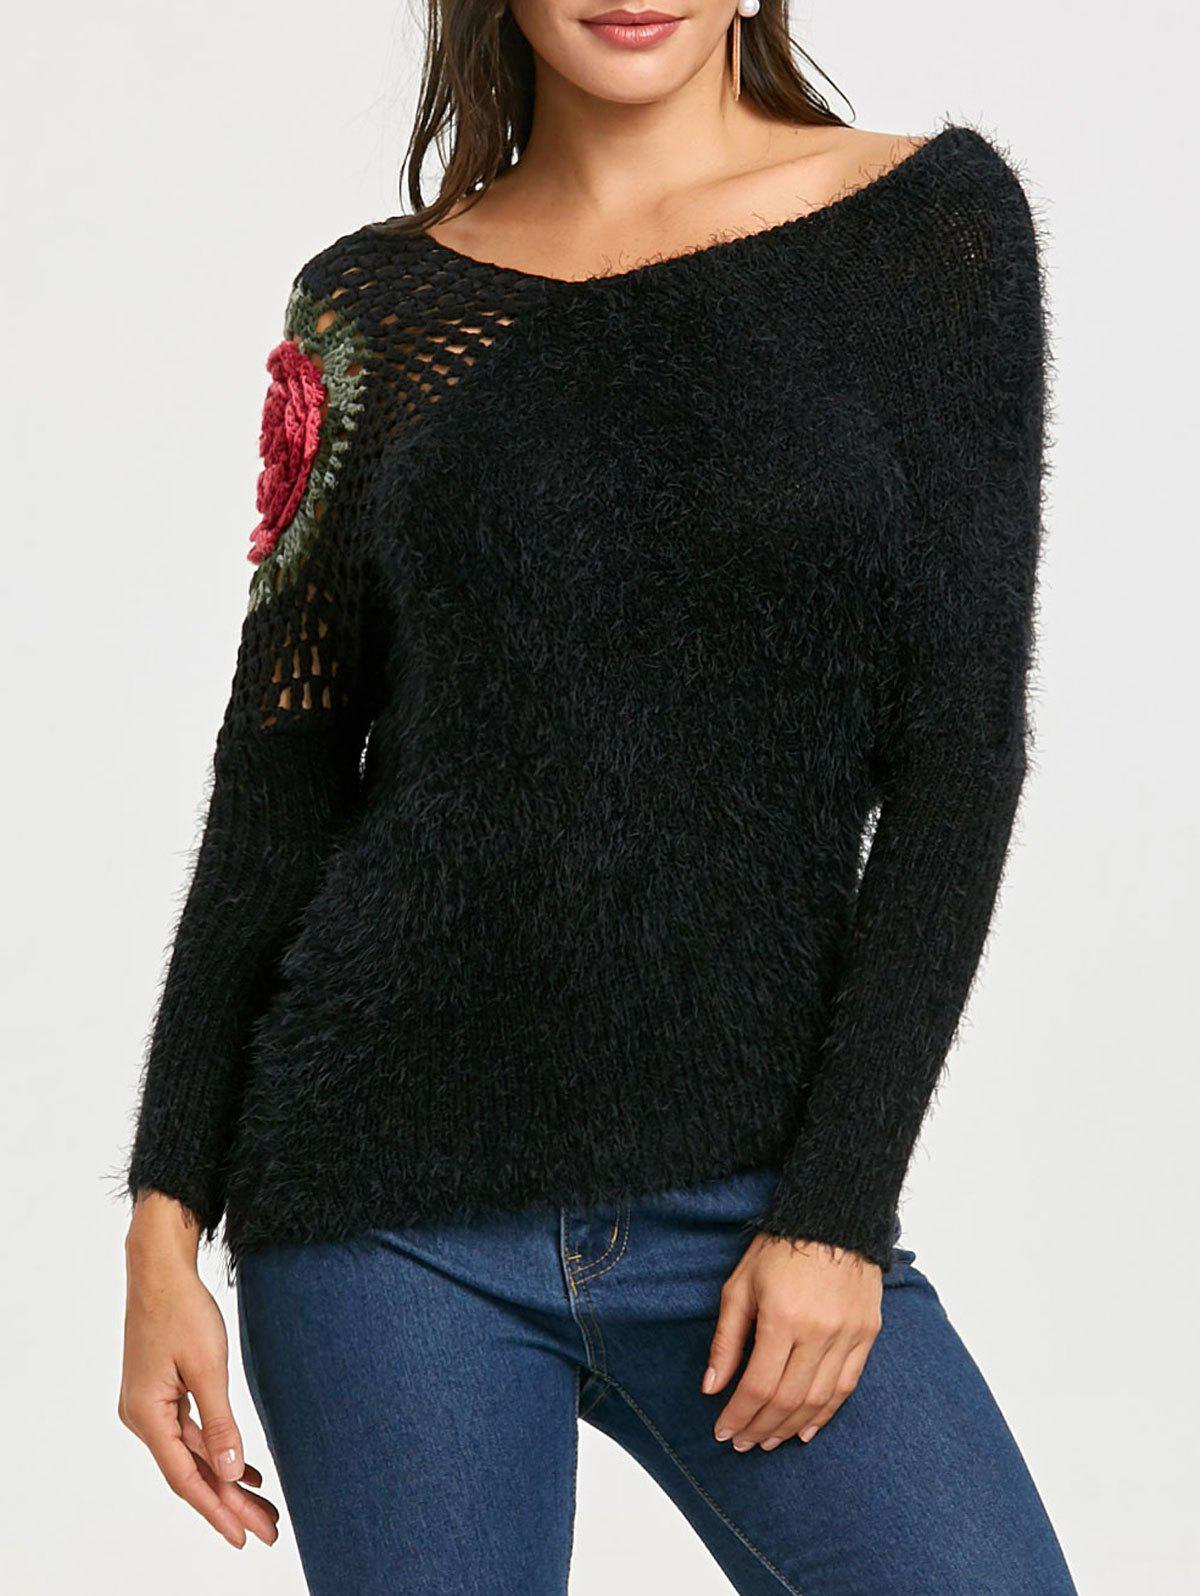 Discount Hollow Out Embroidered Sweater